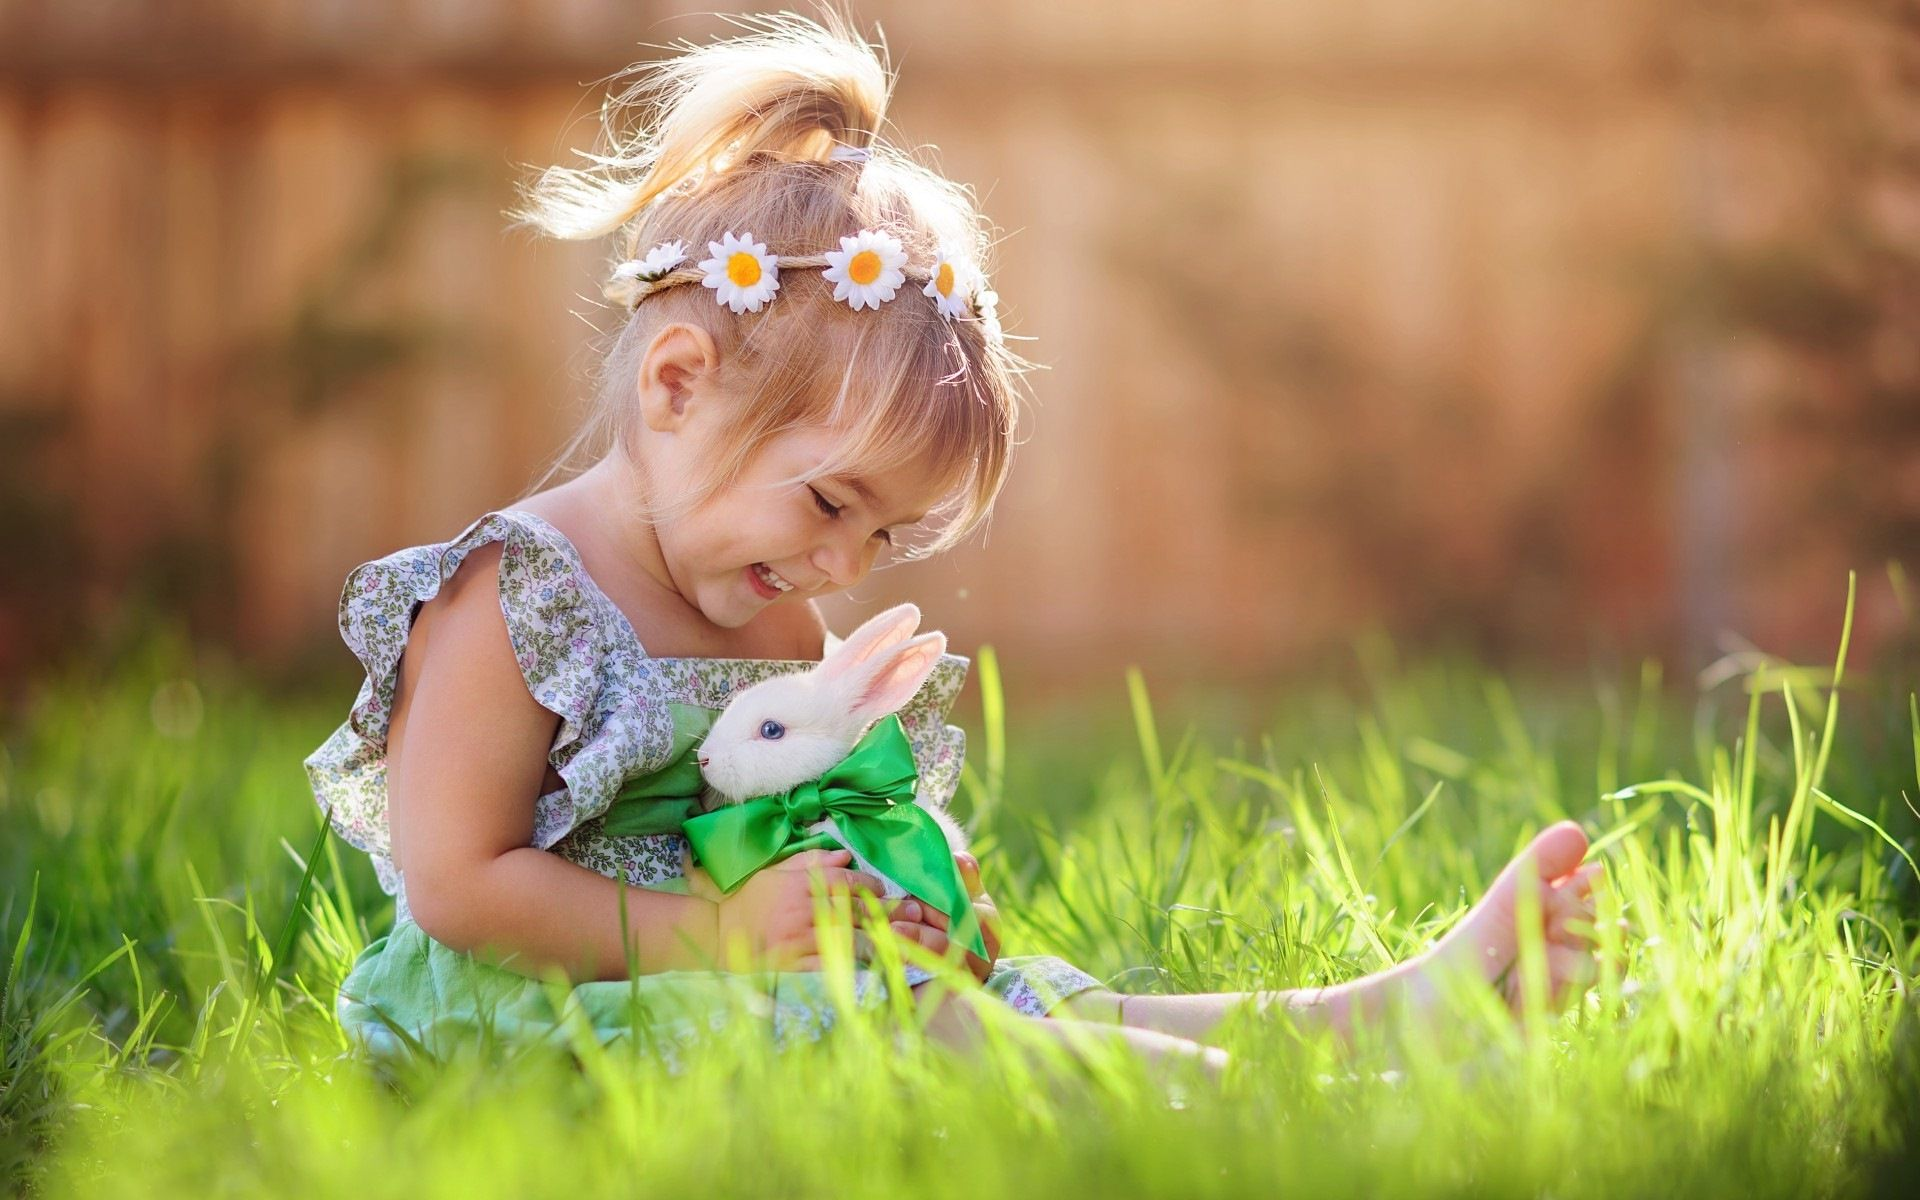 Child Girl Playing With White Rabbit Wallpaper Jpg Jpeg Image 1920 1200 Pixels Scaled 50 Rabbit Photos Rabbit Wallpaper Cute Babies